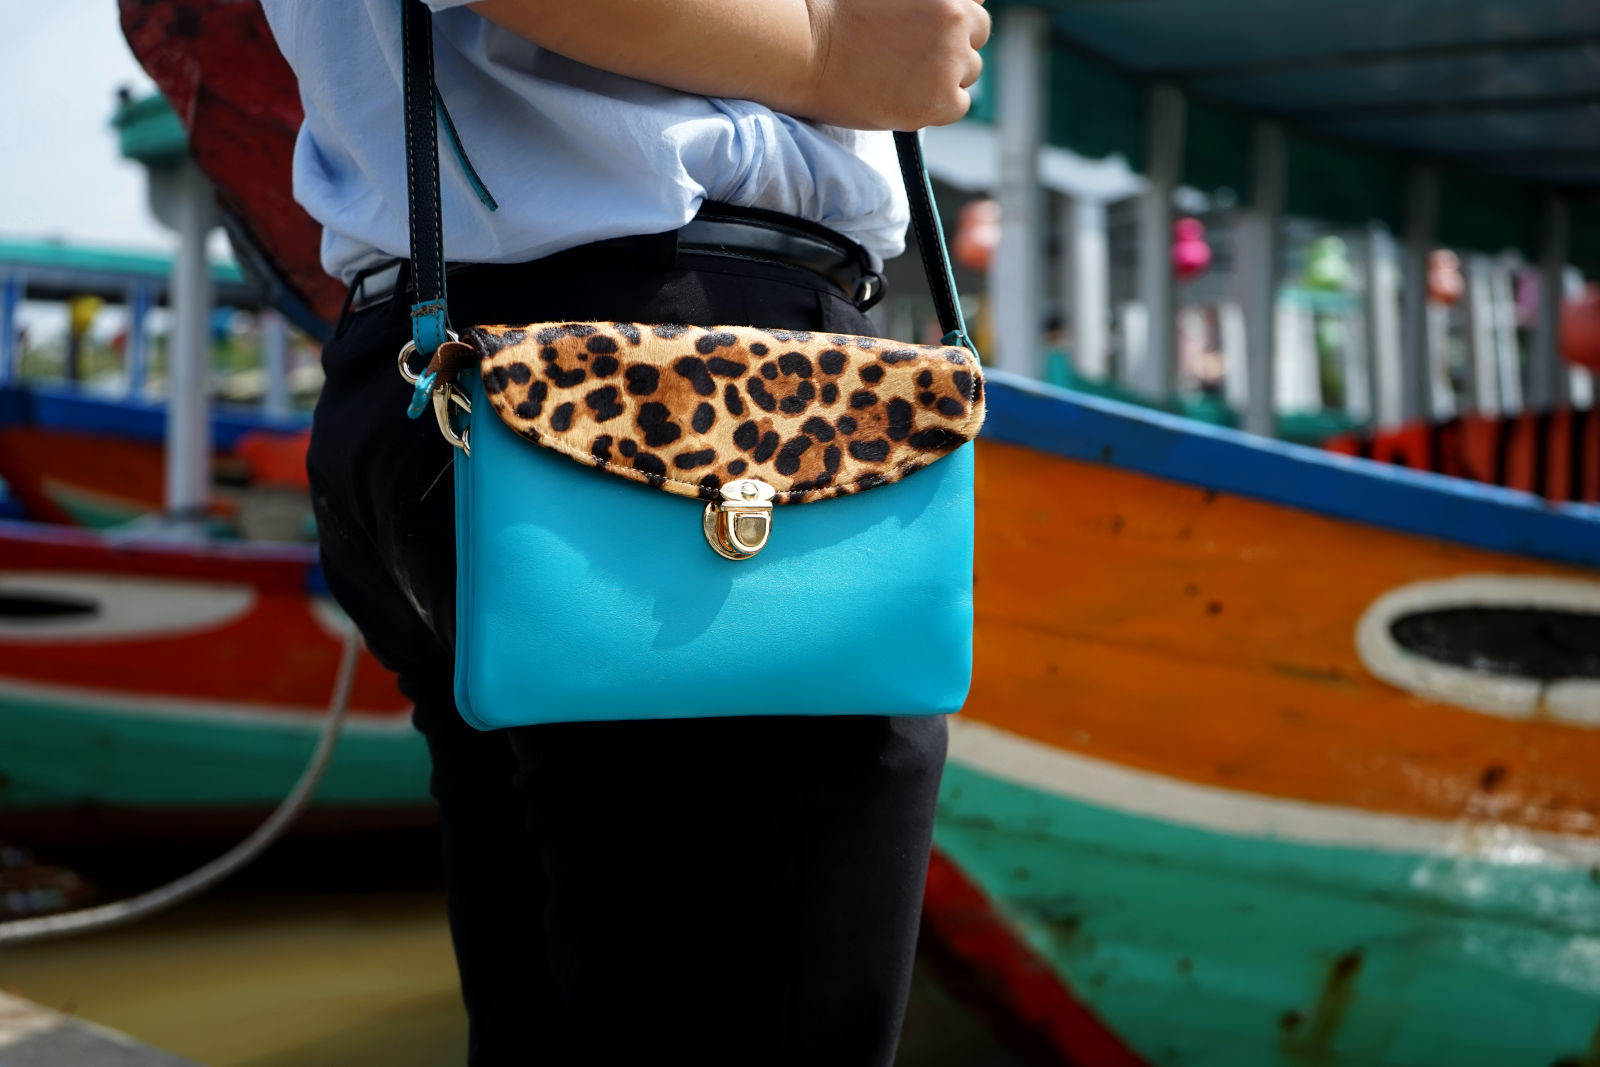 Hoi An Real Leather - Da Bao Real Leather: Leather handbags - Turquoise Leopard Handbag